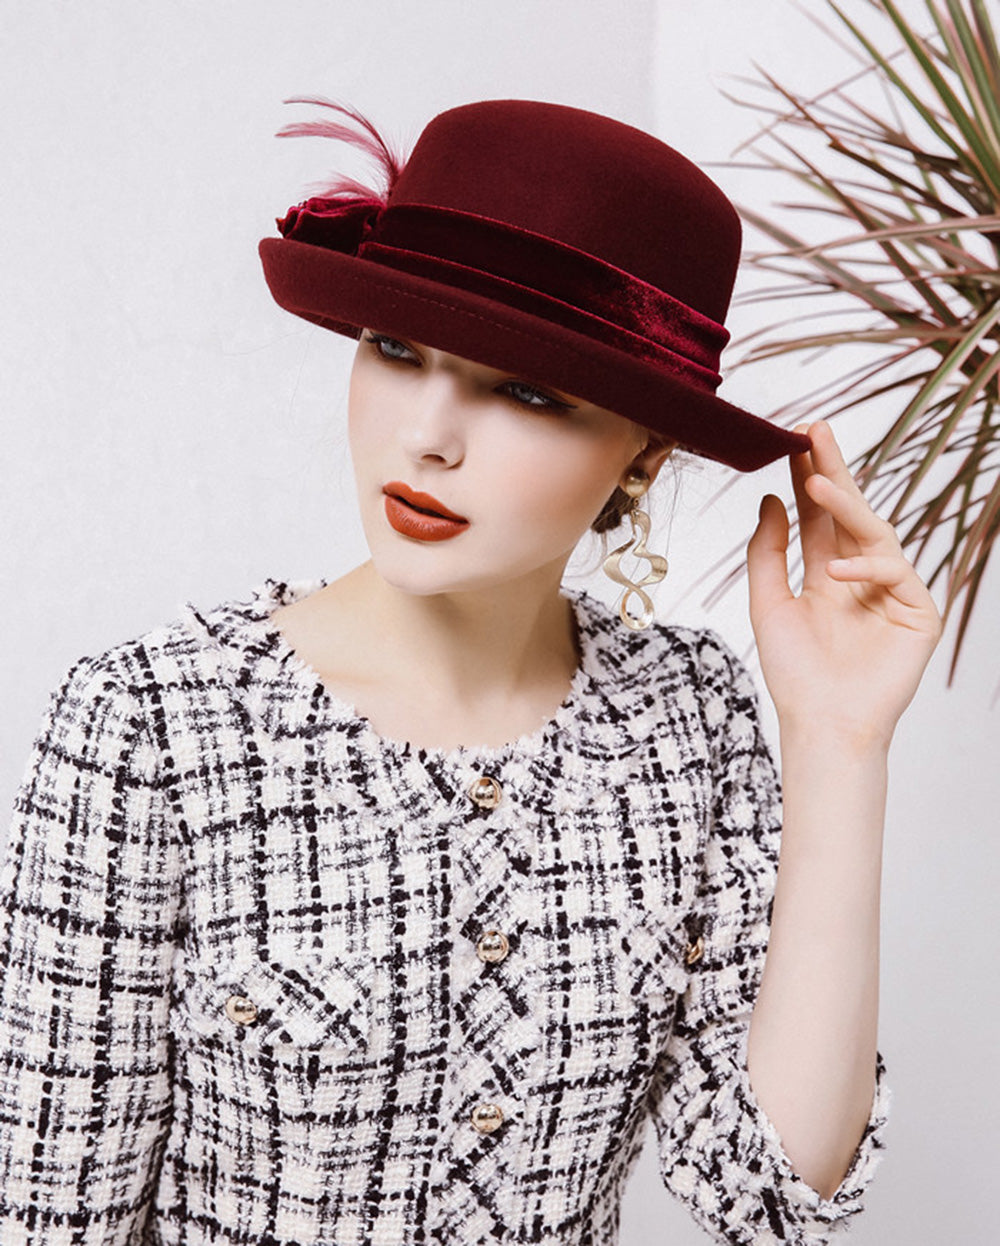 CORIRESHA Felt Flowers Church Bowler Hat